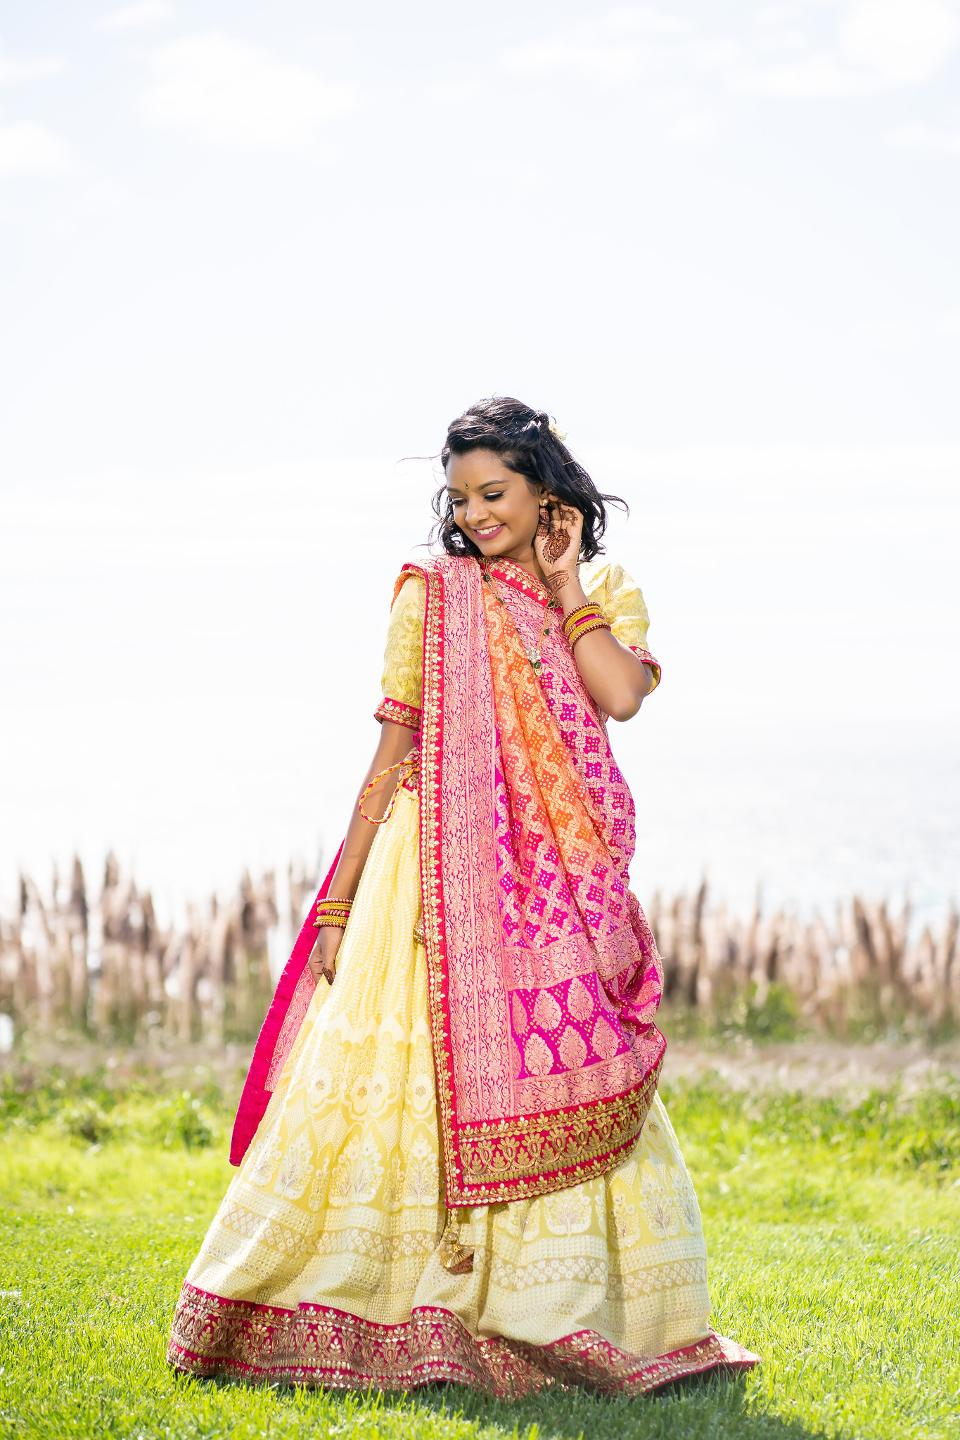 Amiti in another bright traditional dress.